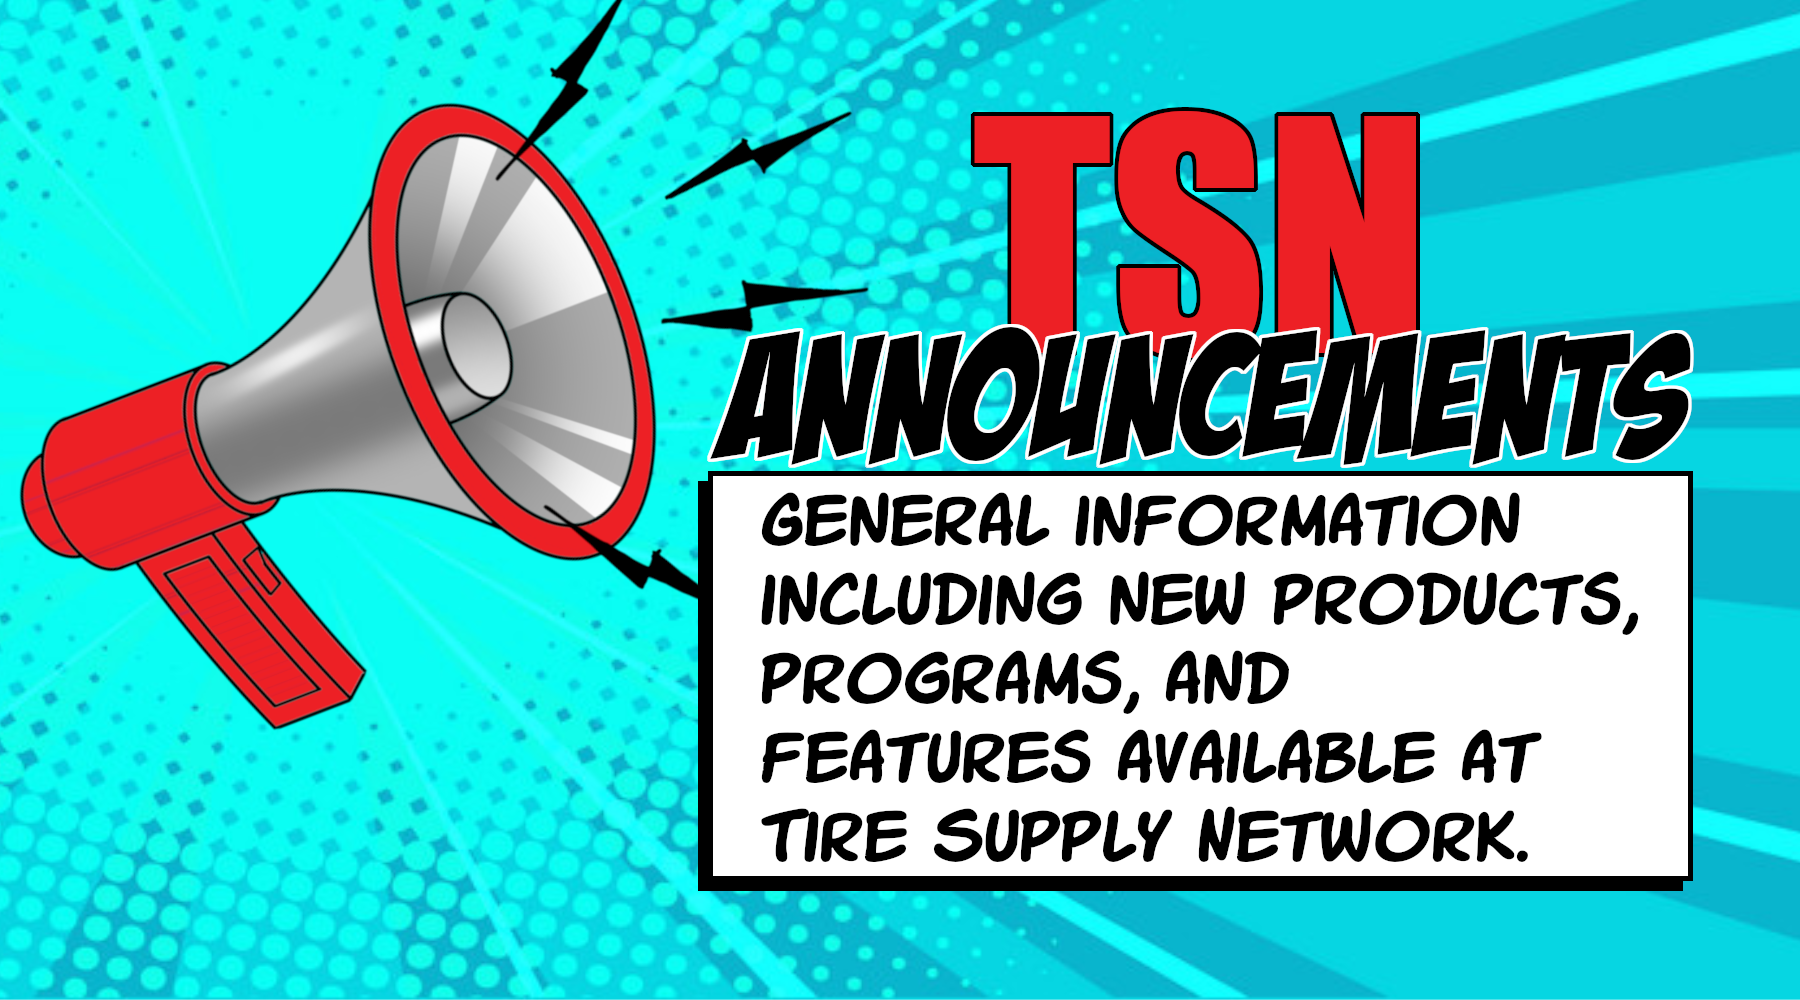 TSN-announcements-information-new-products-programs-features-tire-supplies-tire-repair-tire-supplier-valve-stems-wheel-weights-tire-patches